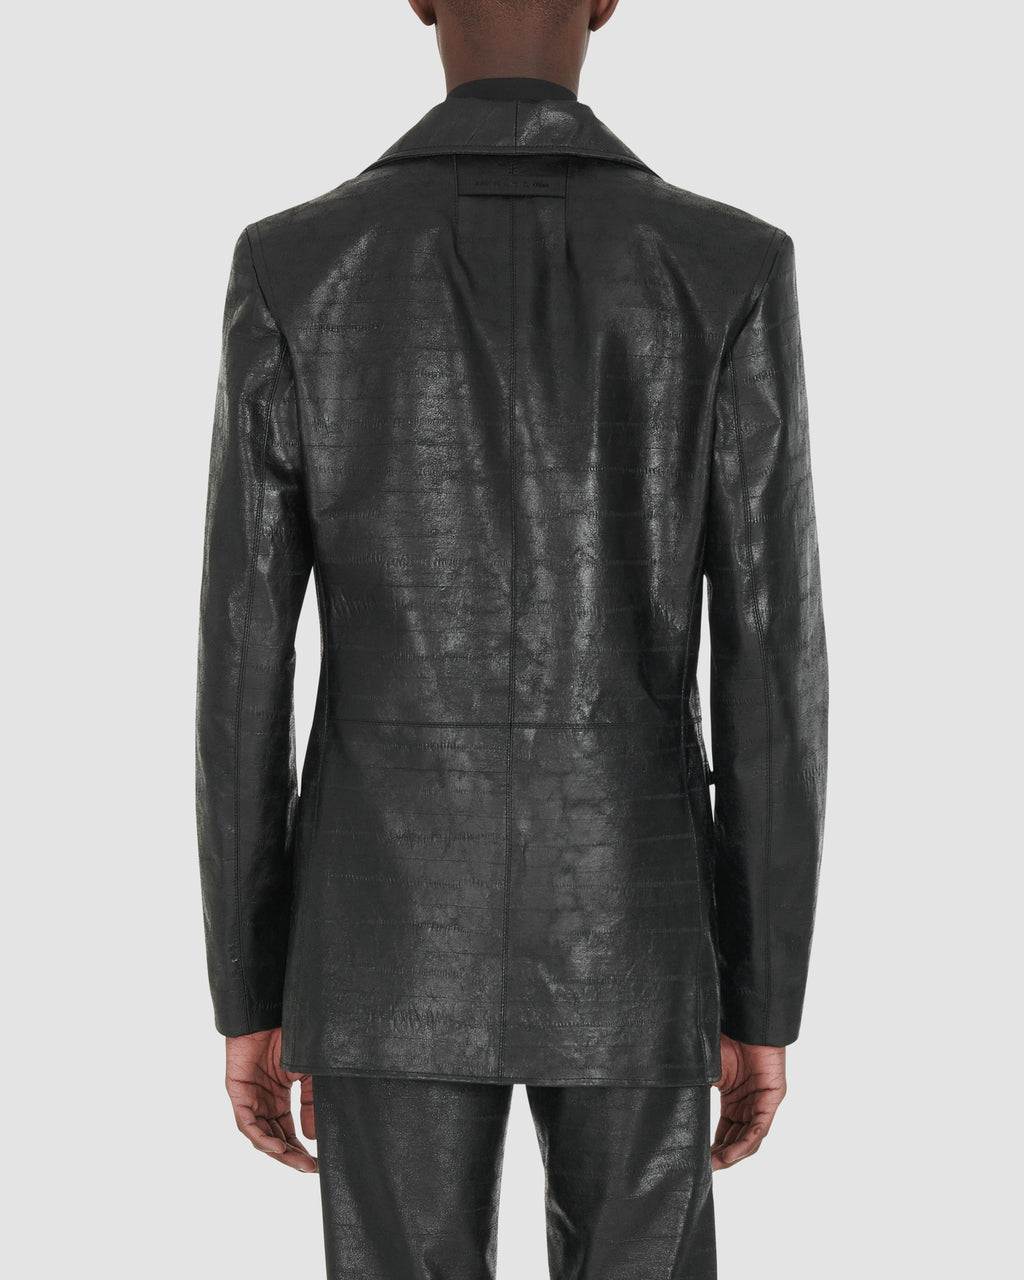 1017 ALYX 9SM | EEL BLAZER RUNWAY MADE TO ORDER | Outerwear | F20, FW20 PRE-ORDER, MEN